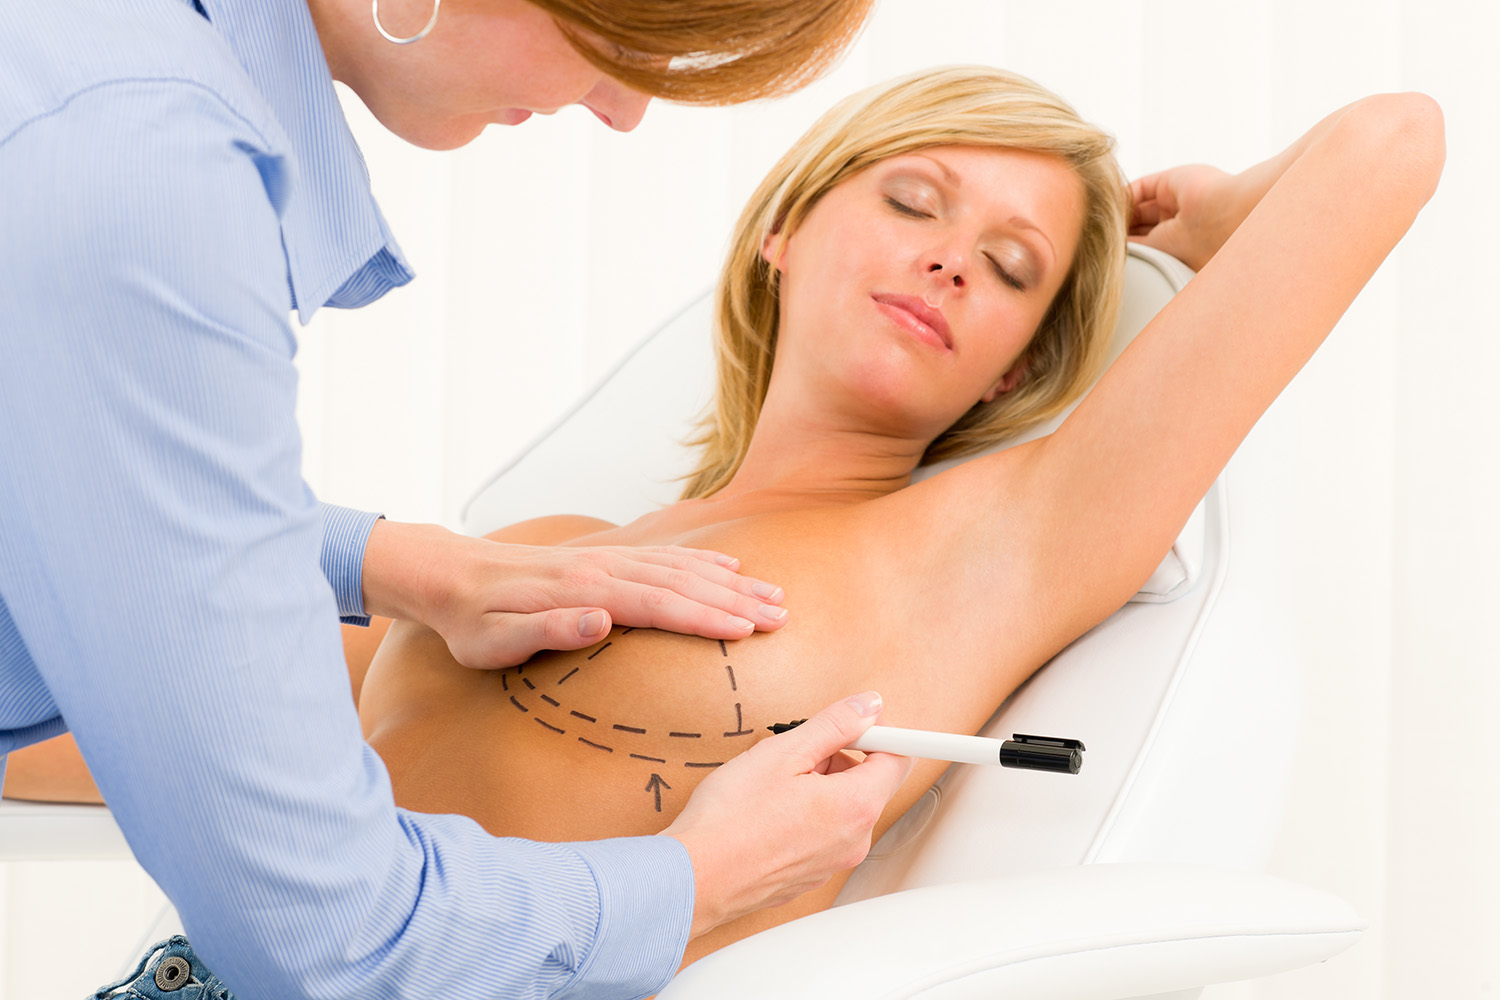 Which Breast Implants Are the Safest?